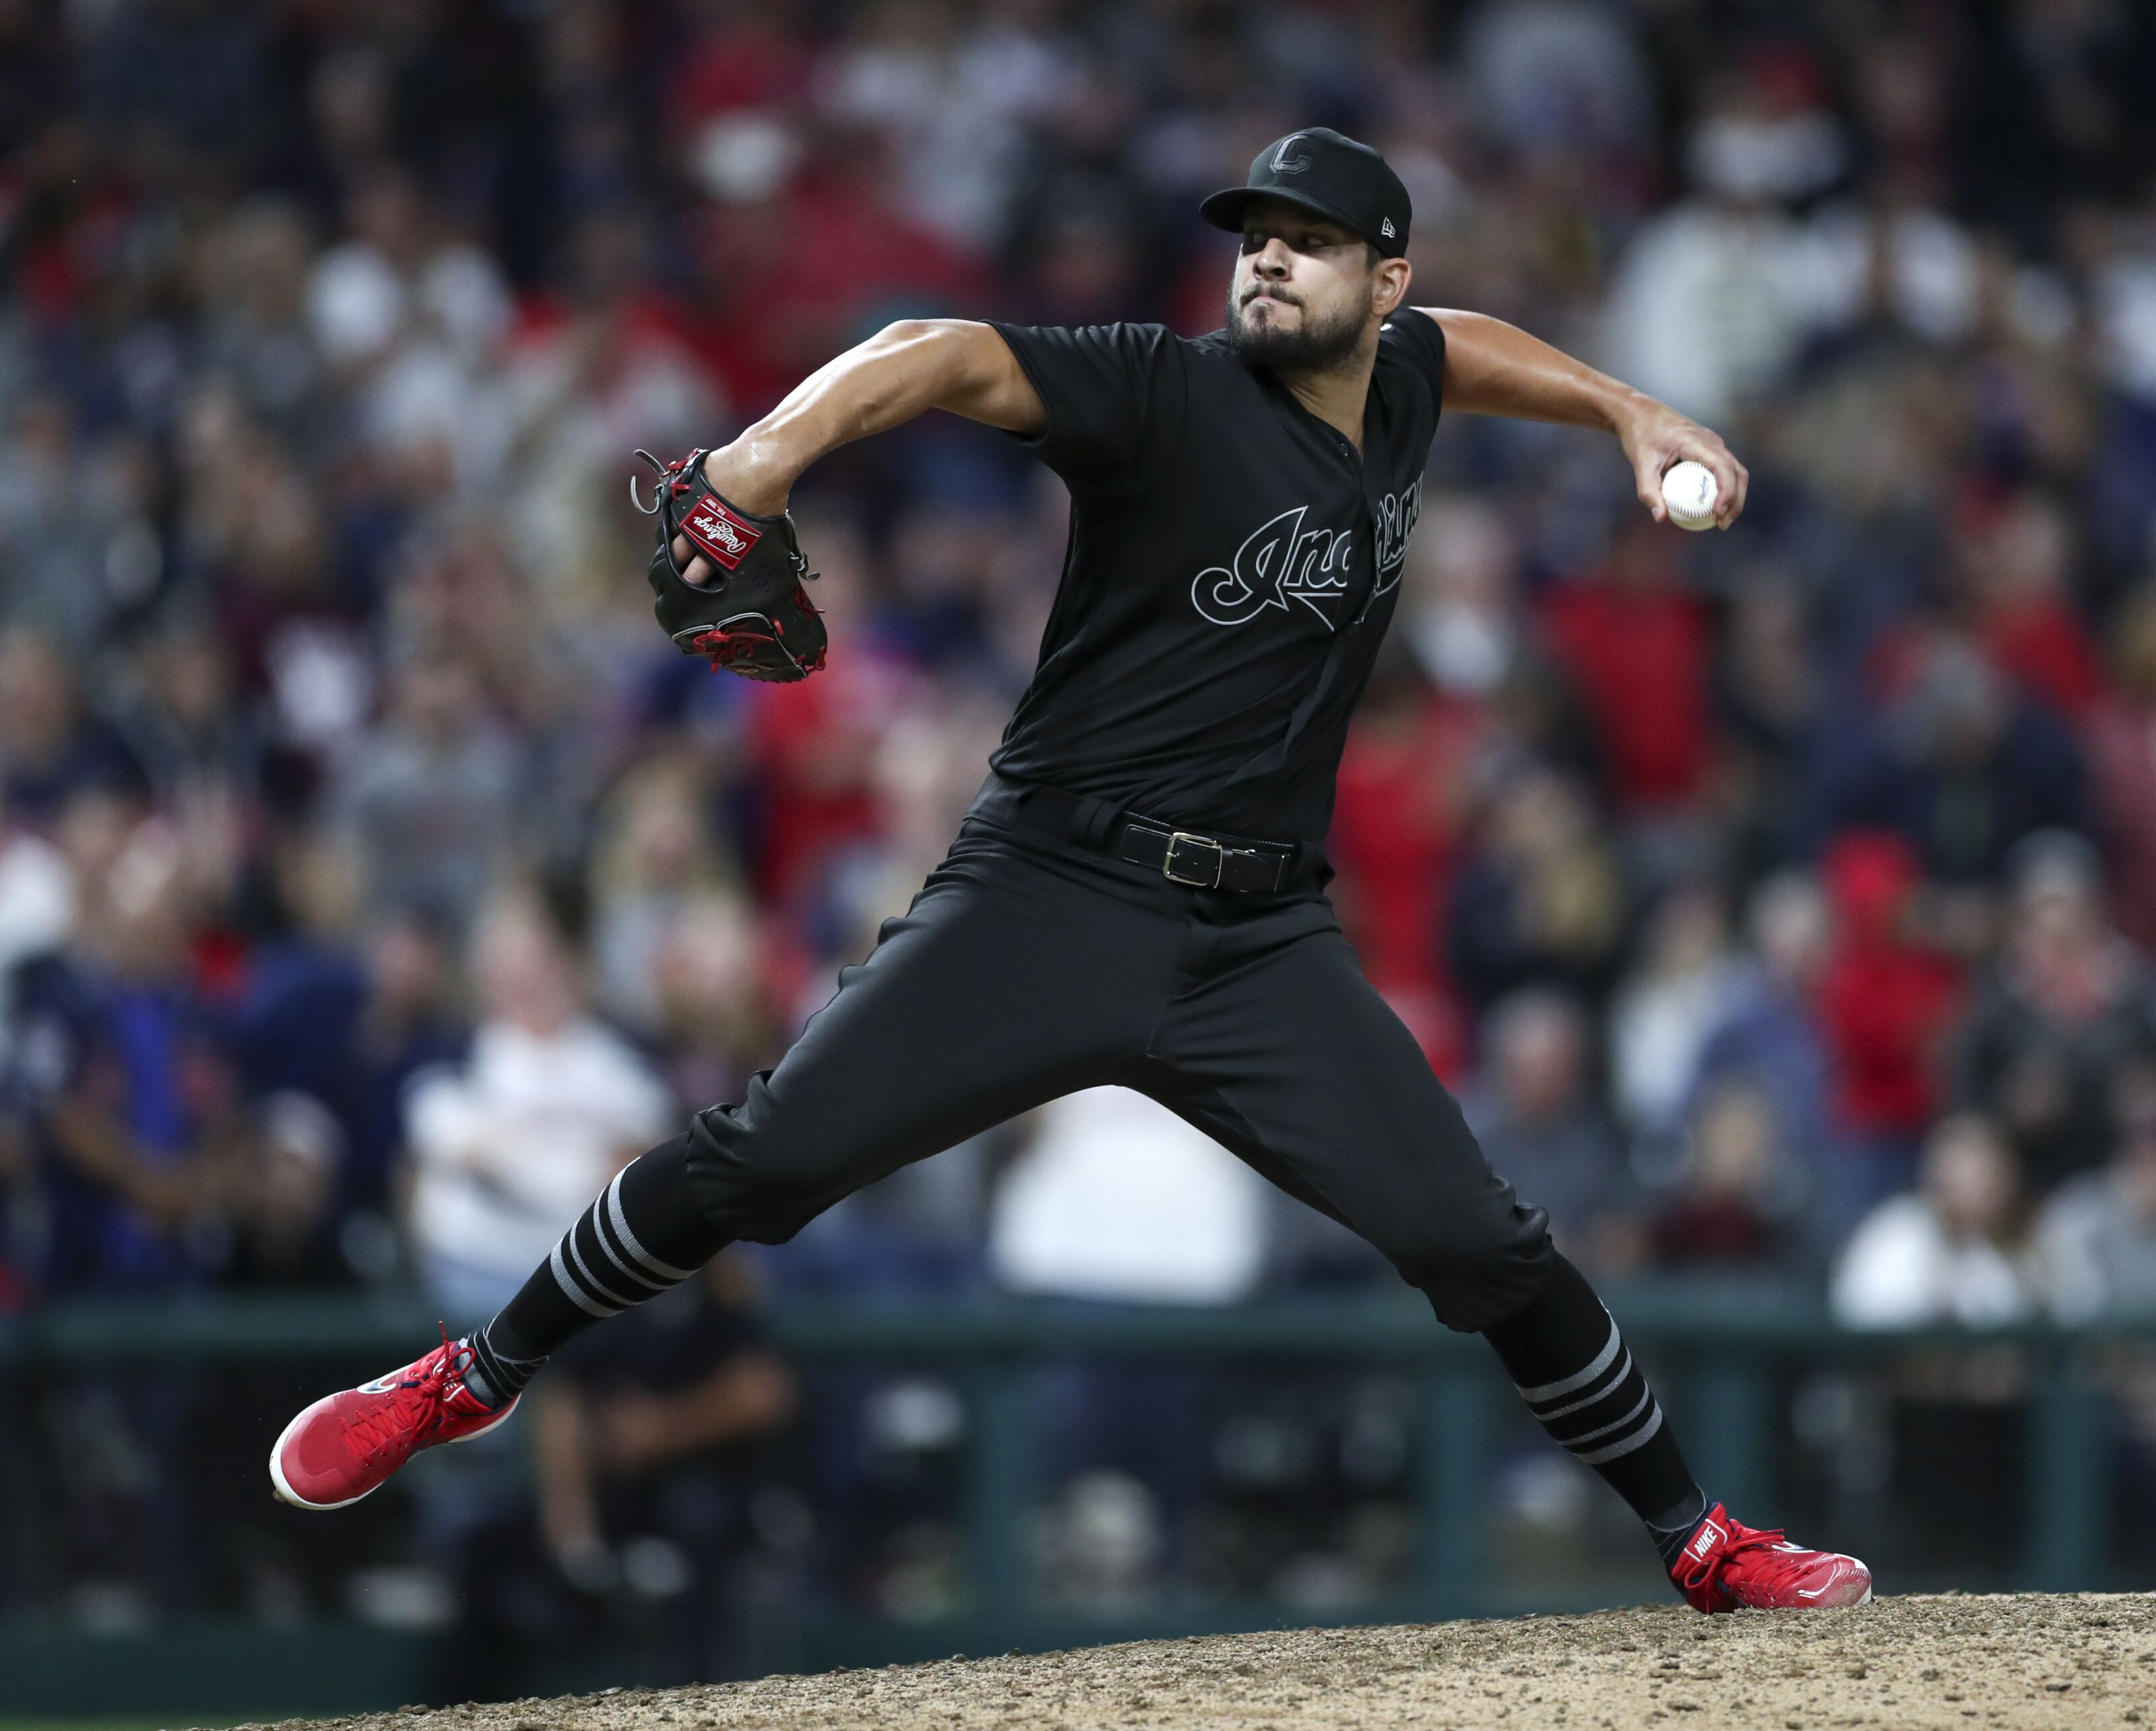 Cleveland Indians: Brad Hand bounces back to secure win